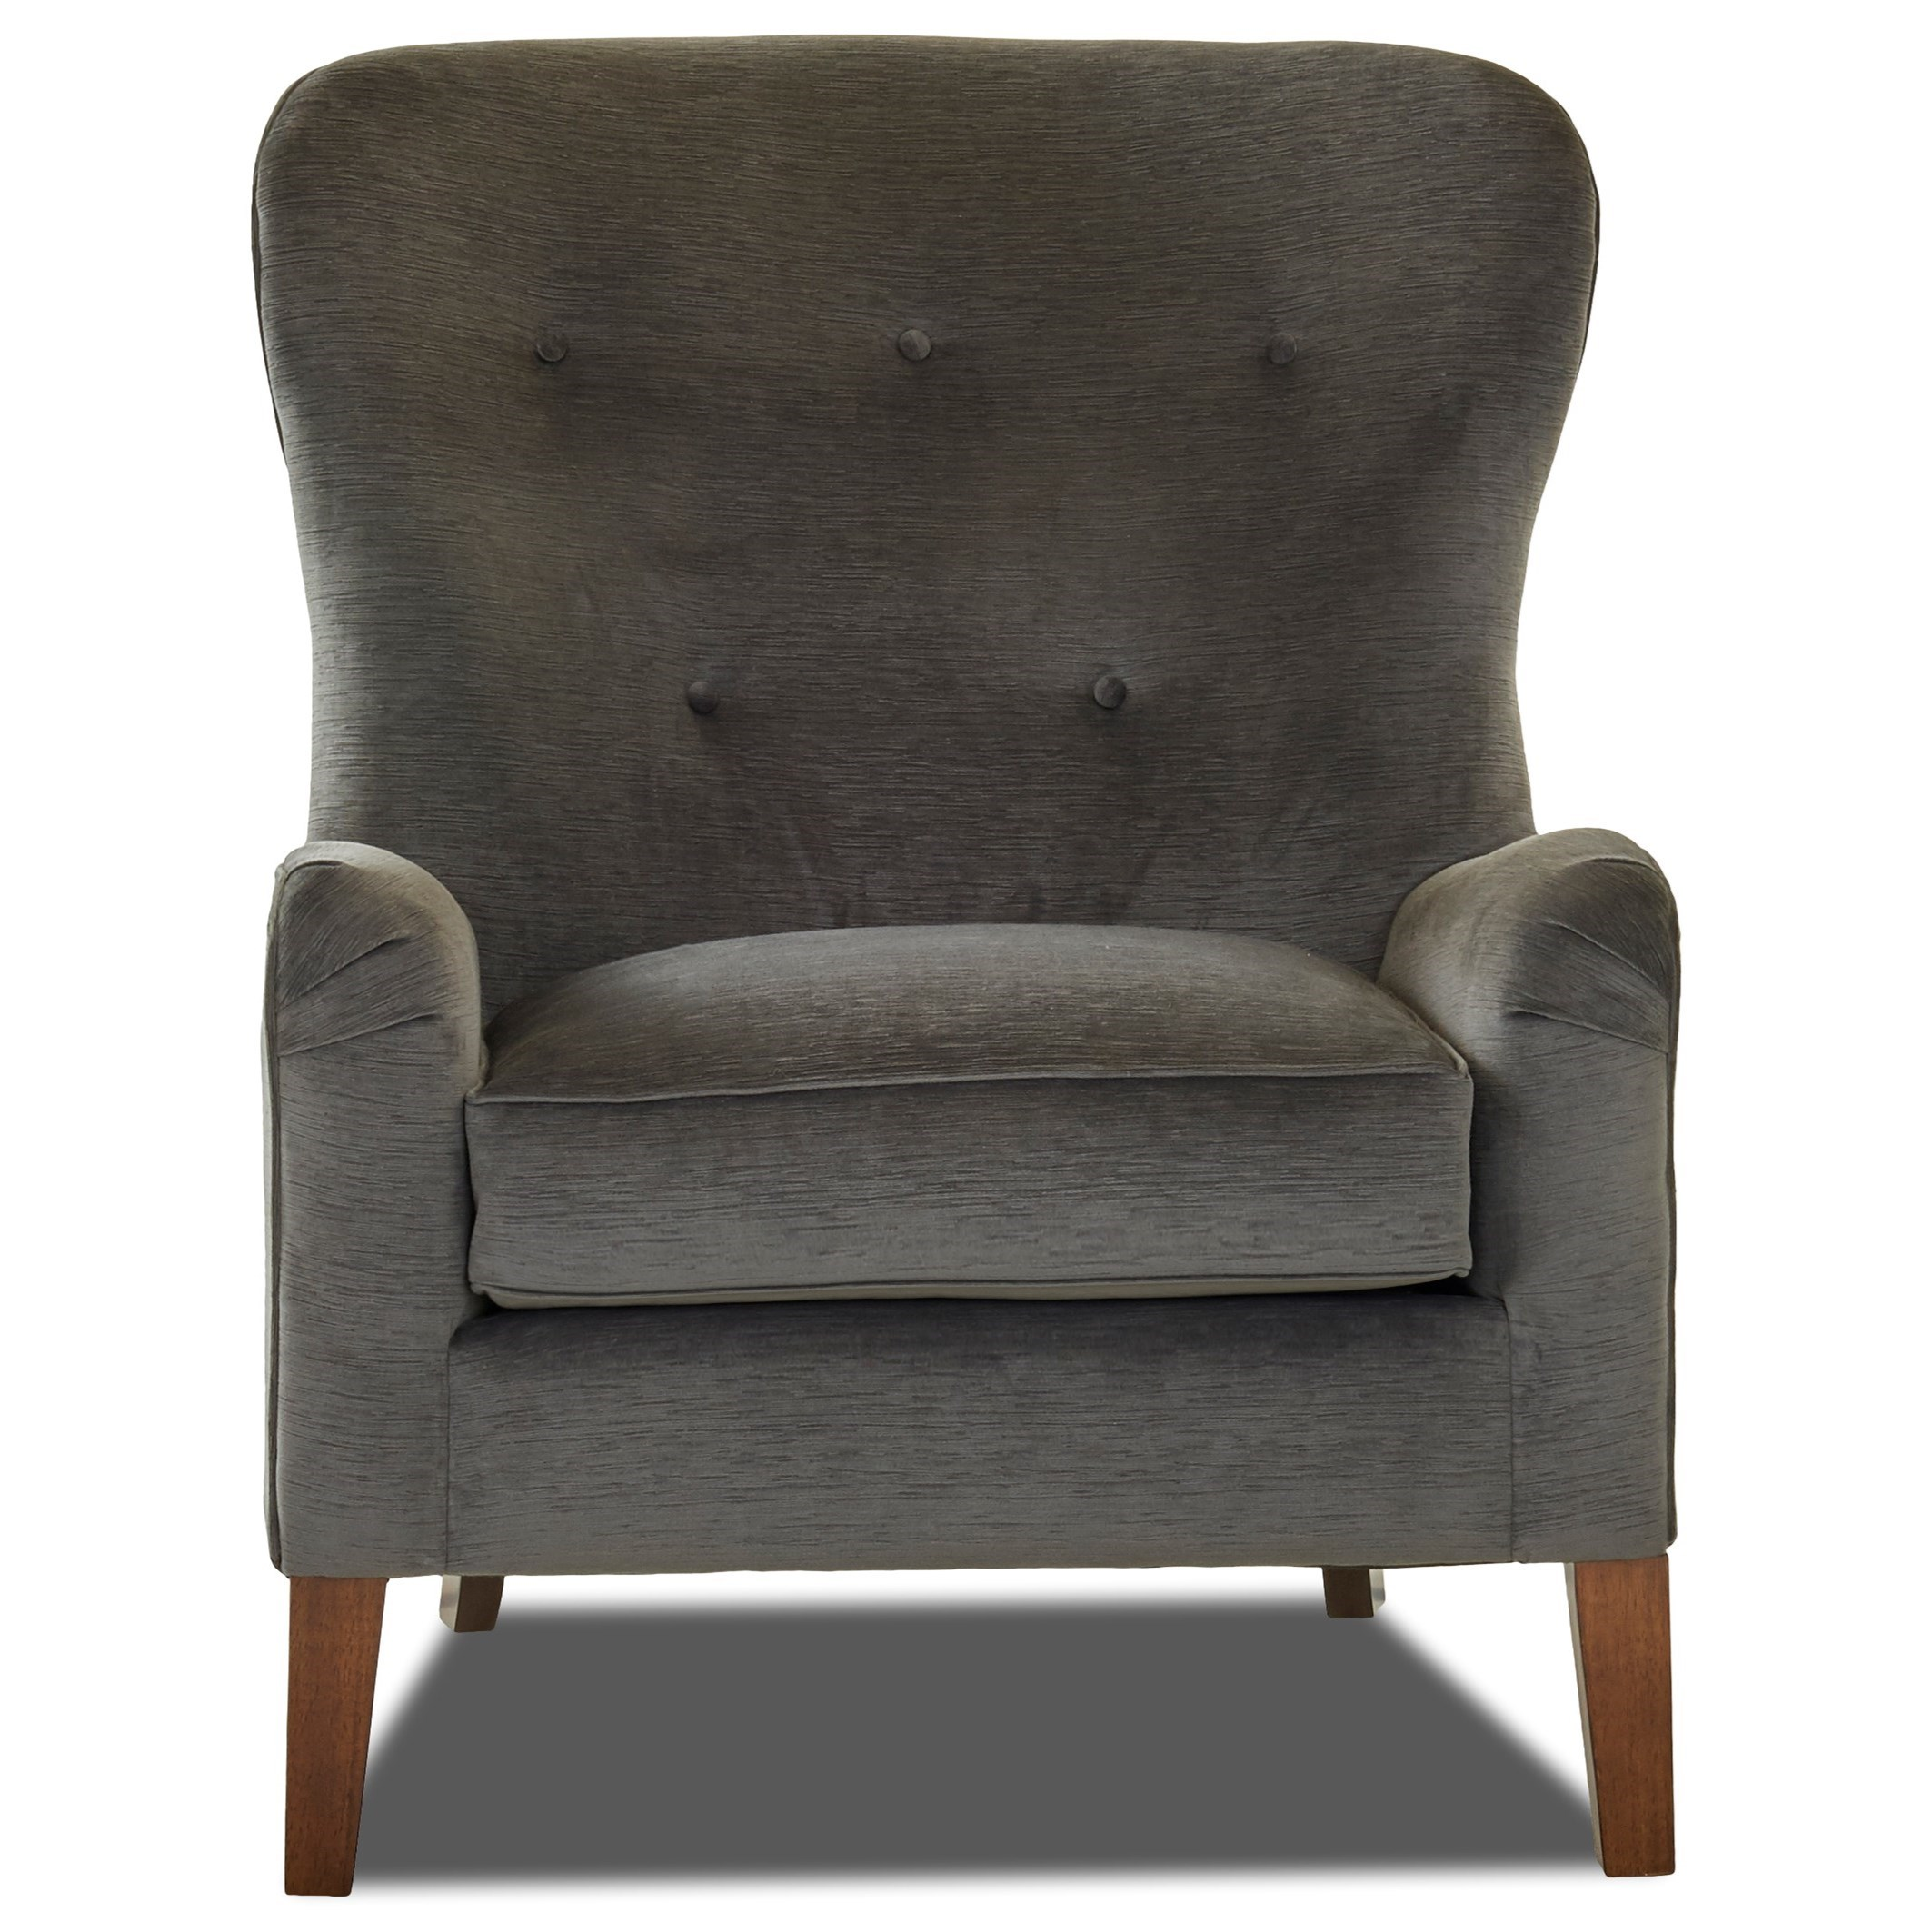 Chairs and Accents Annabel Chair by Klaussner at Johnny Janosik